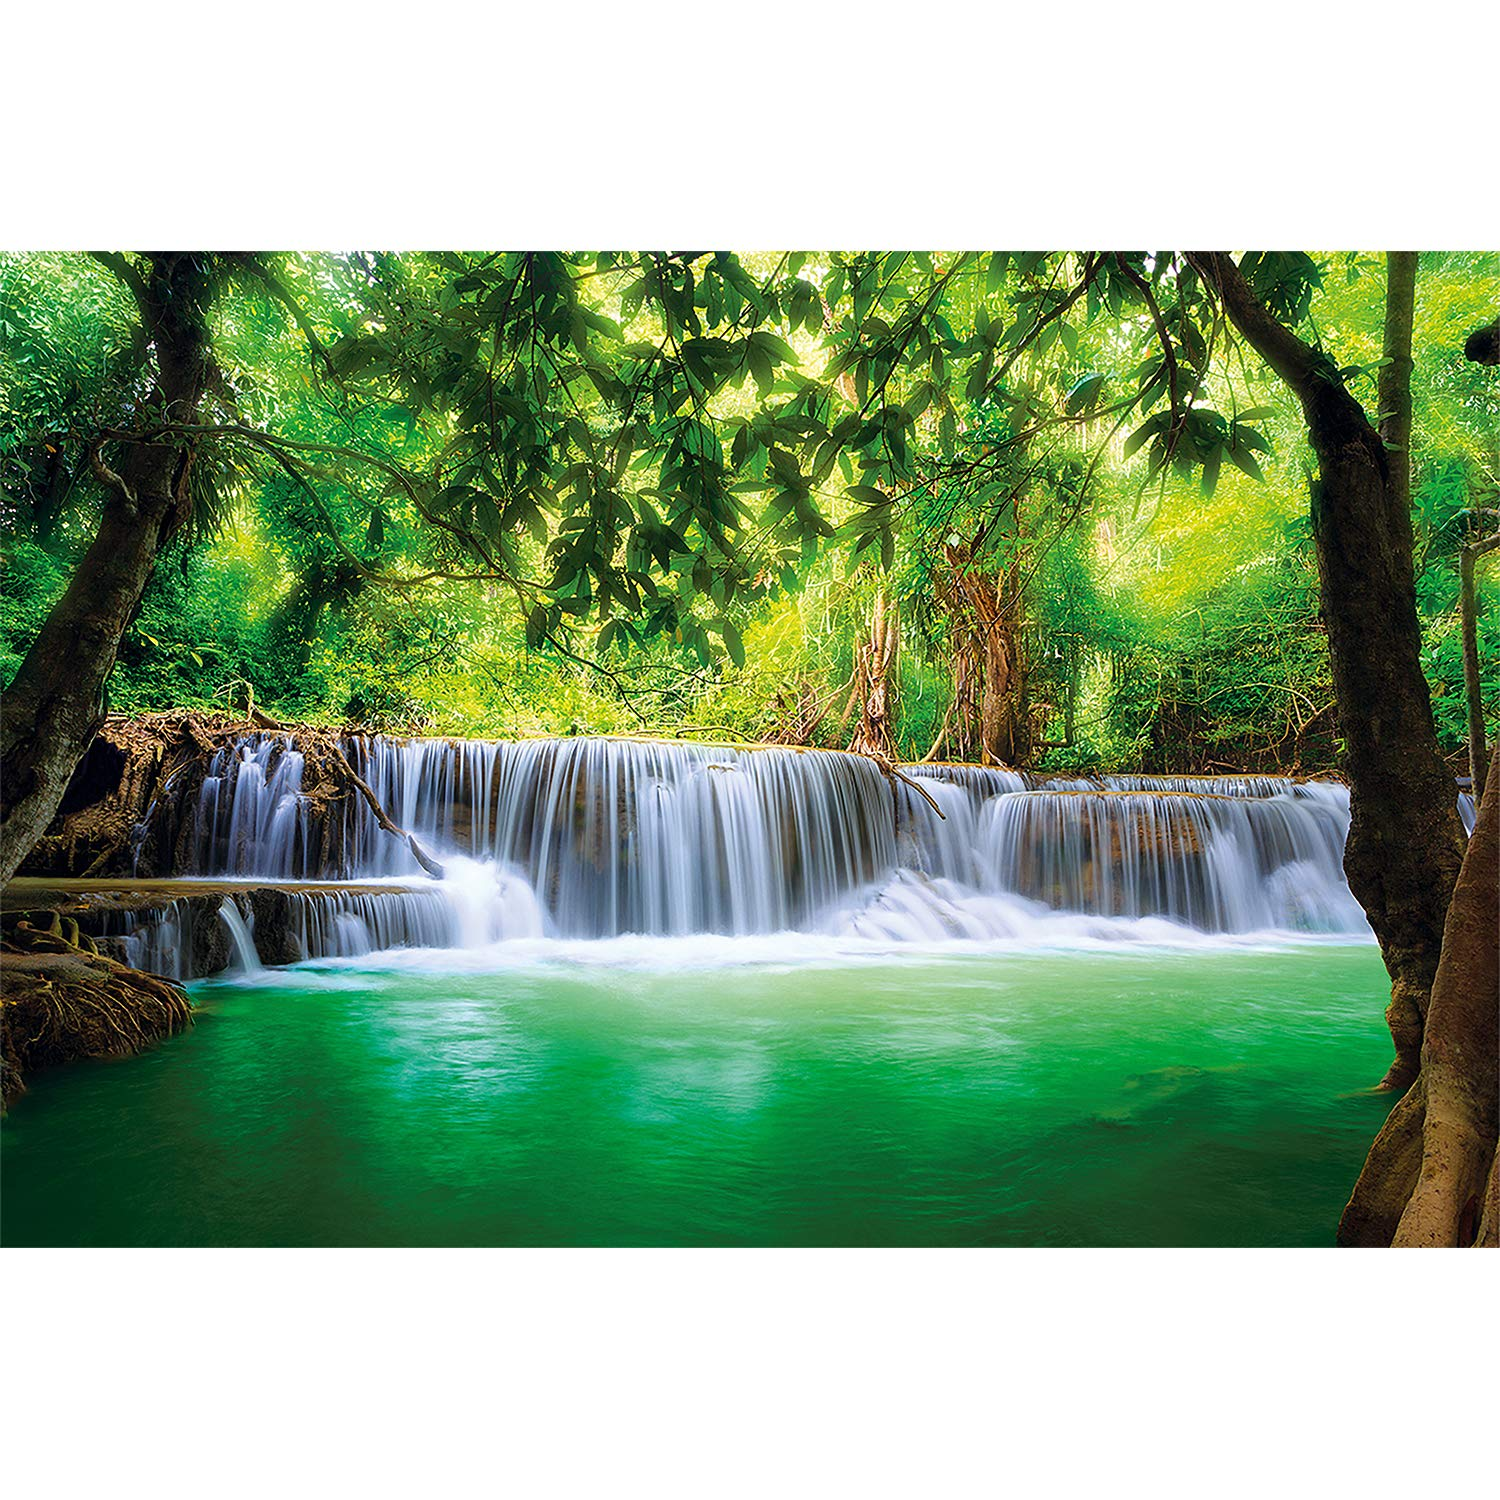 GREAT ART Wall Mural - Feng Shui Paradise Waterfall - Wallpaper Wall Decoration Picture Decoration Nature in Thailand Asia Wellness Spa Wall Decor (132.3 x 93.7 Inch / 336 x 238 Centimeters) by Great Art